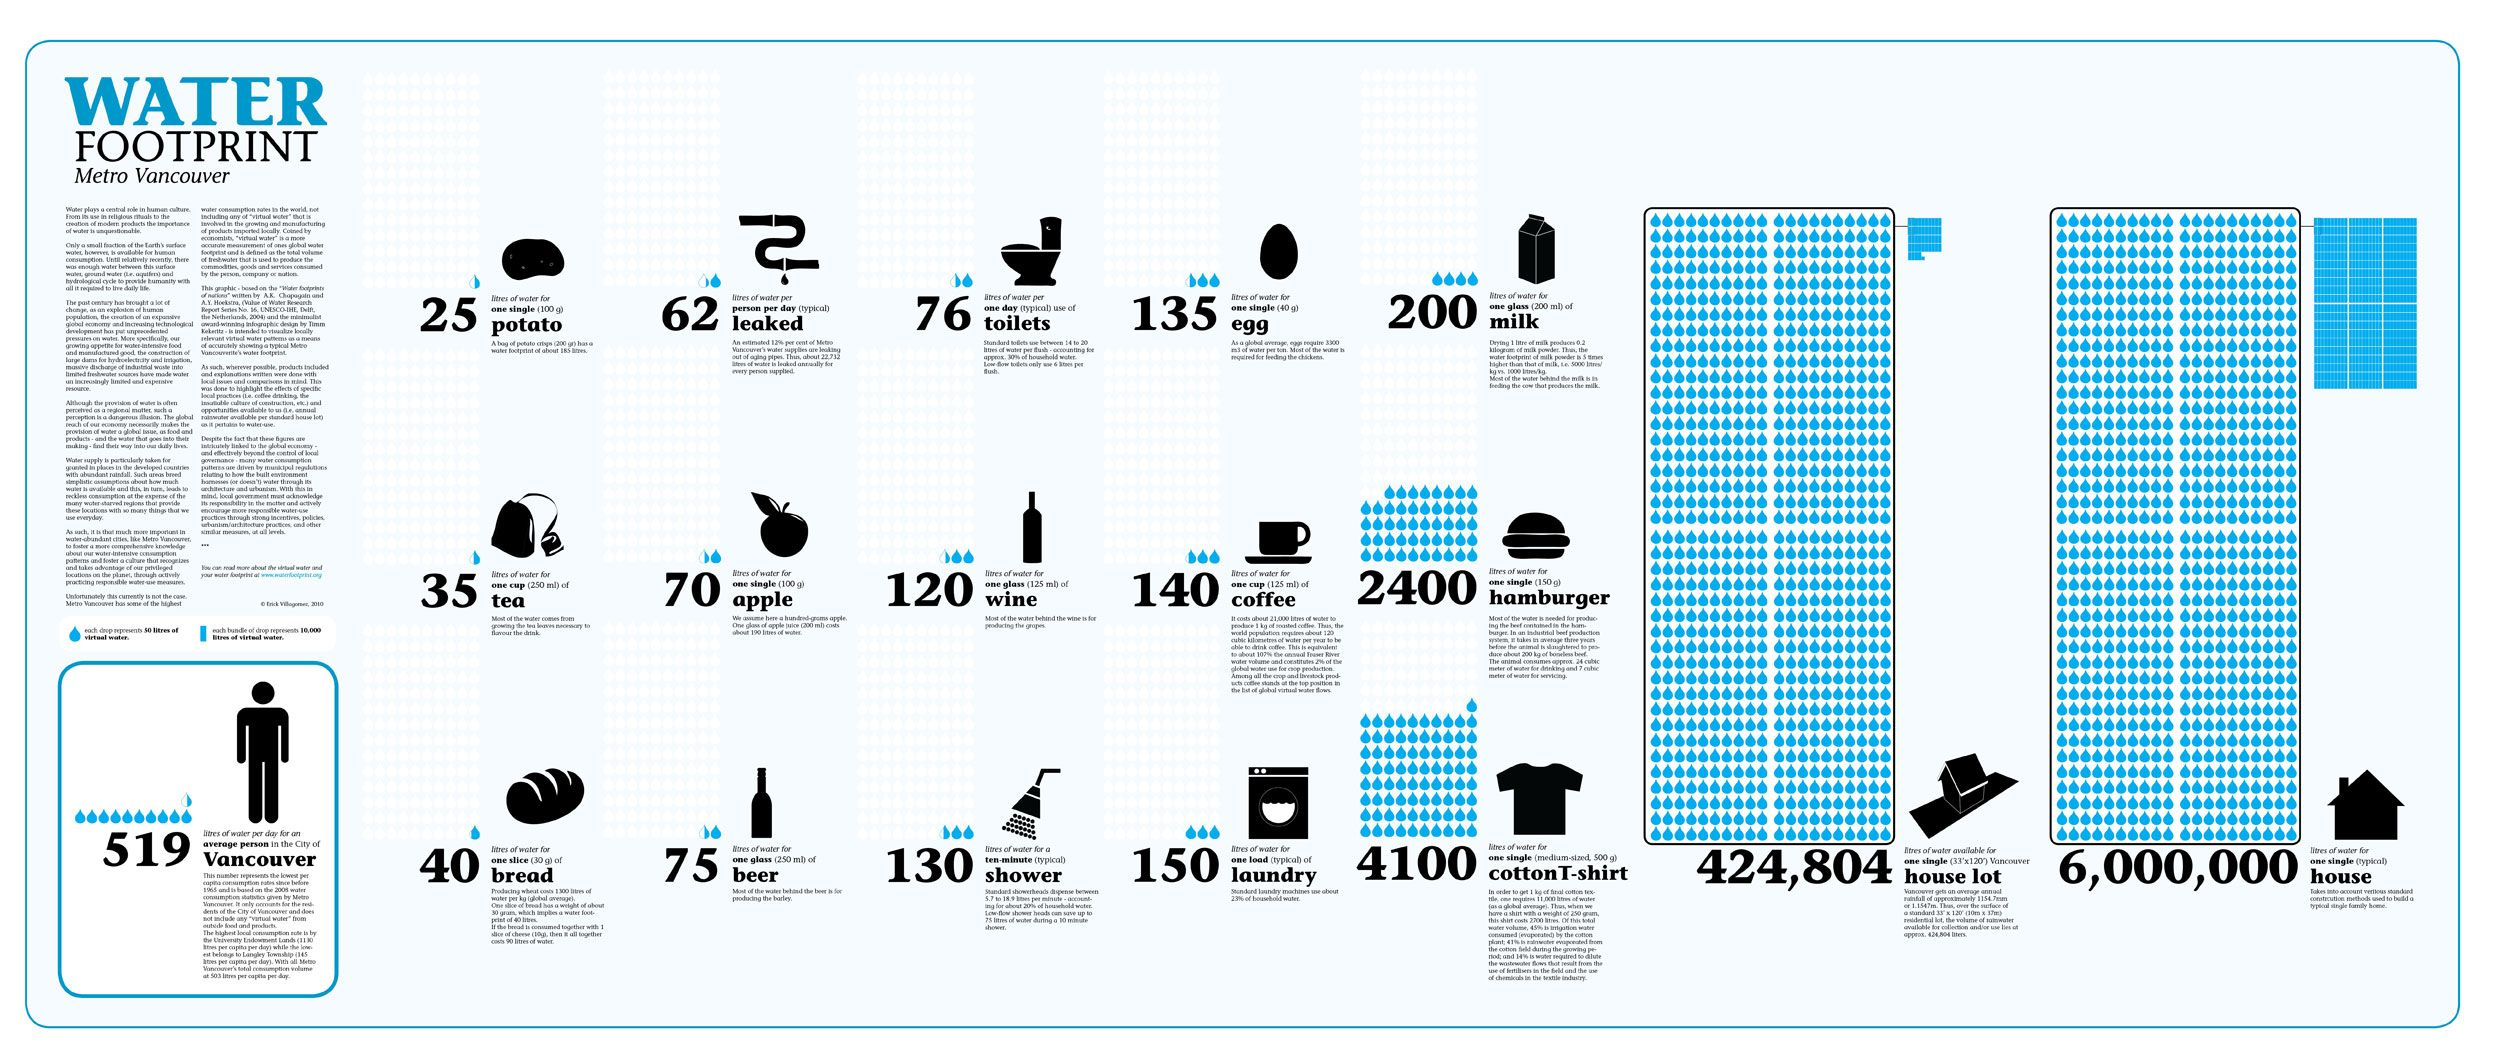 Water Footprint Metro Vancouver Info Graphic Graphics